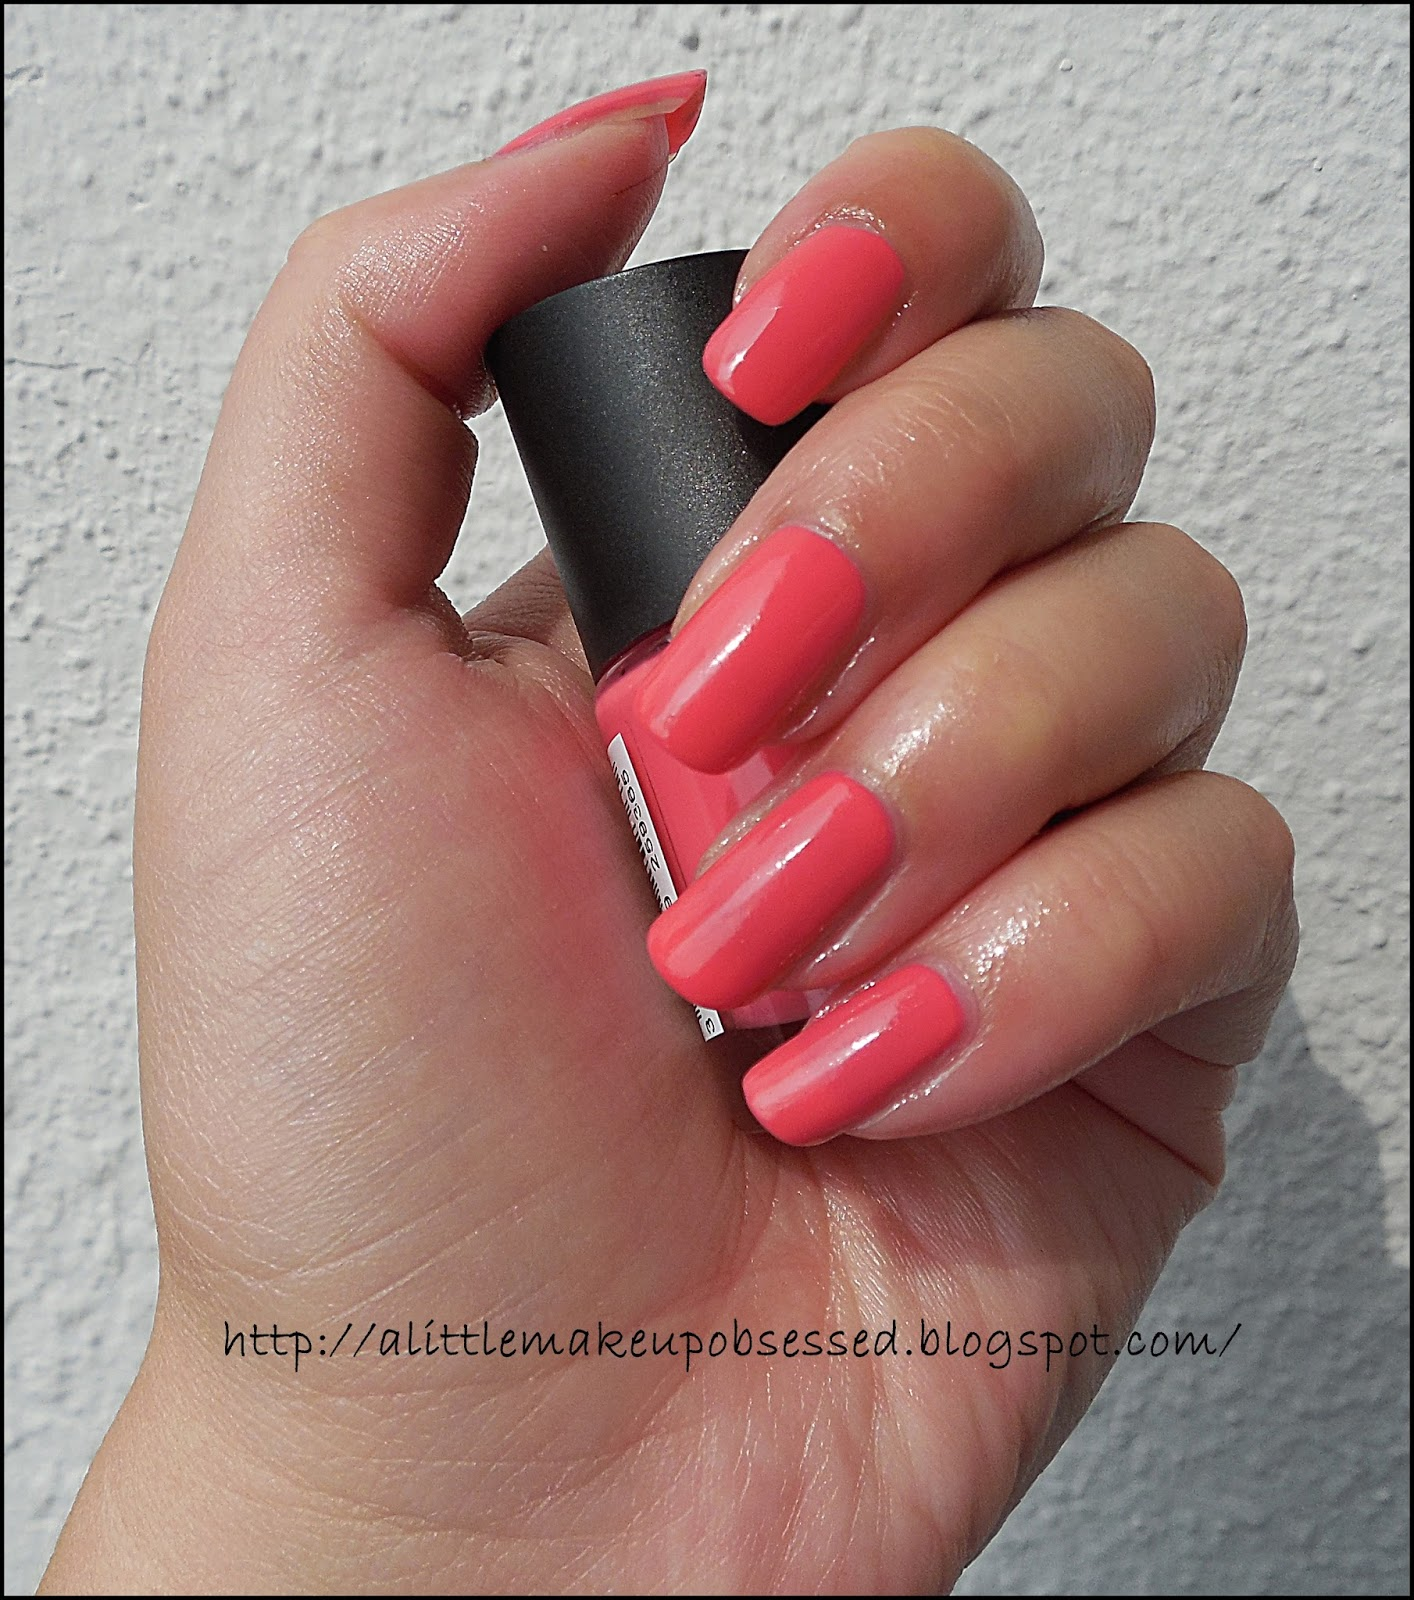 Notd Rimmel London Salon Pro 313 Cocktail Passion A Little Make Up Obsessed